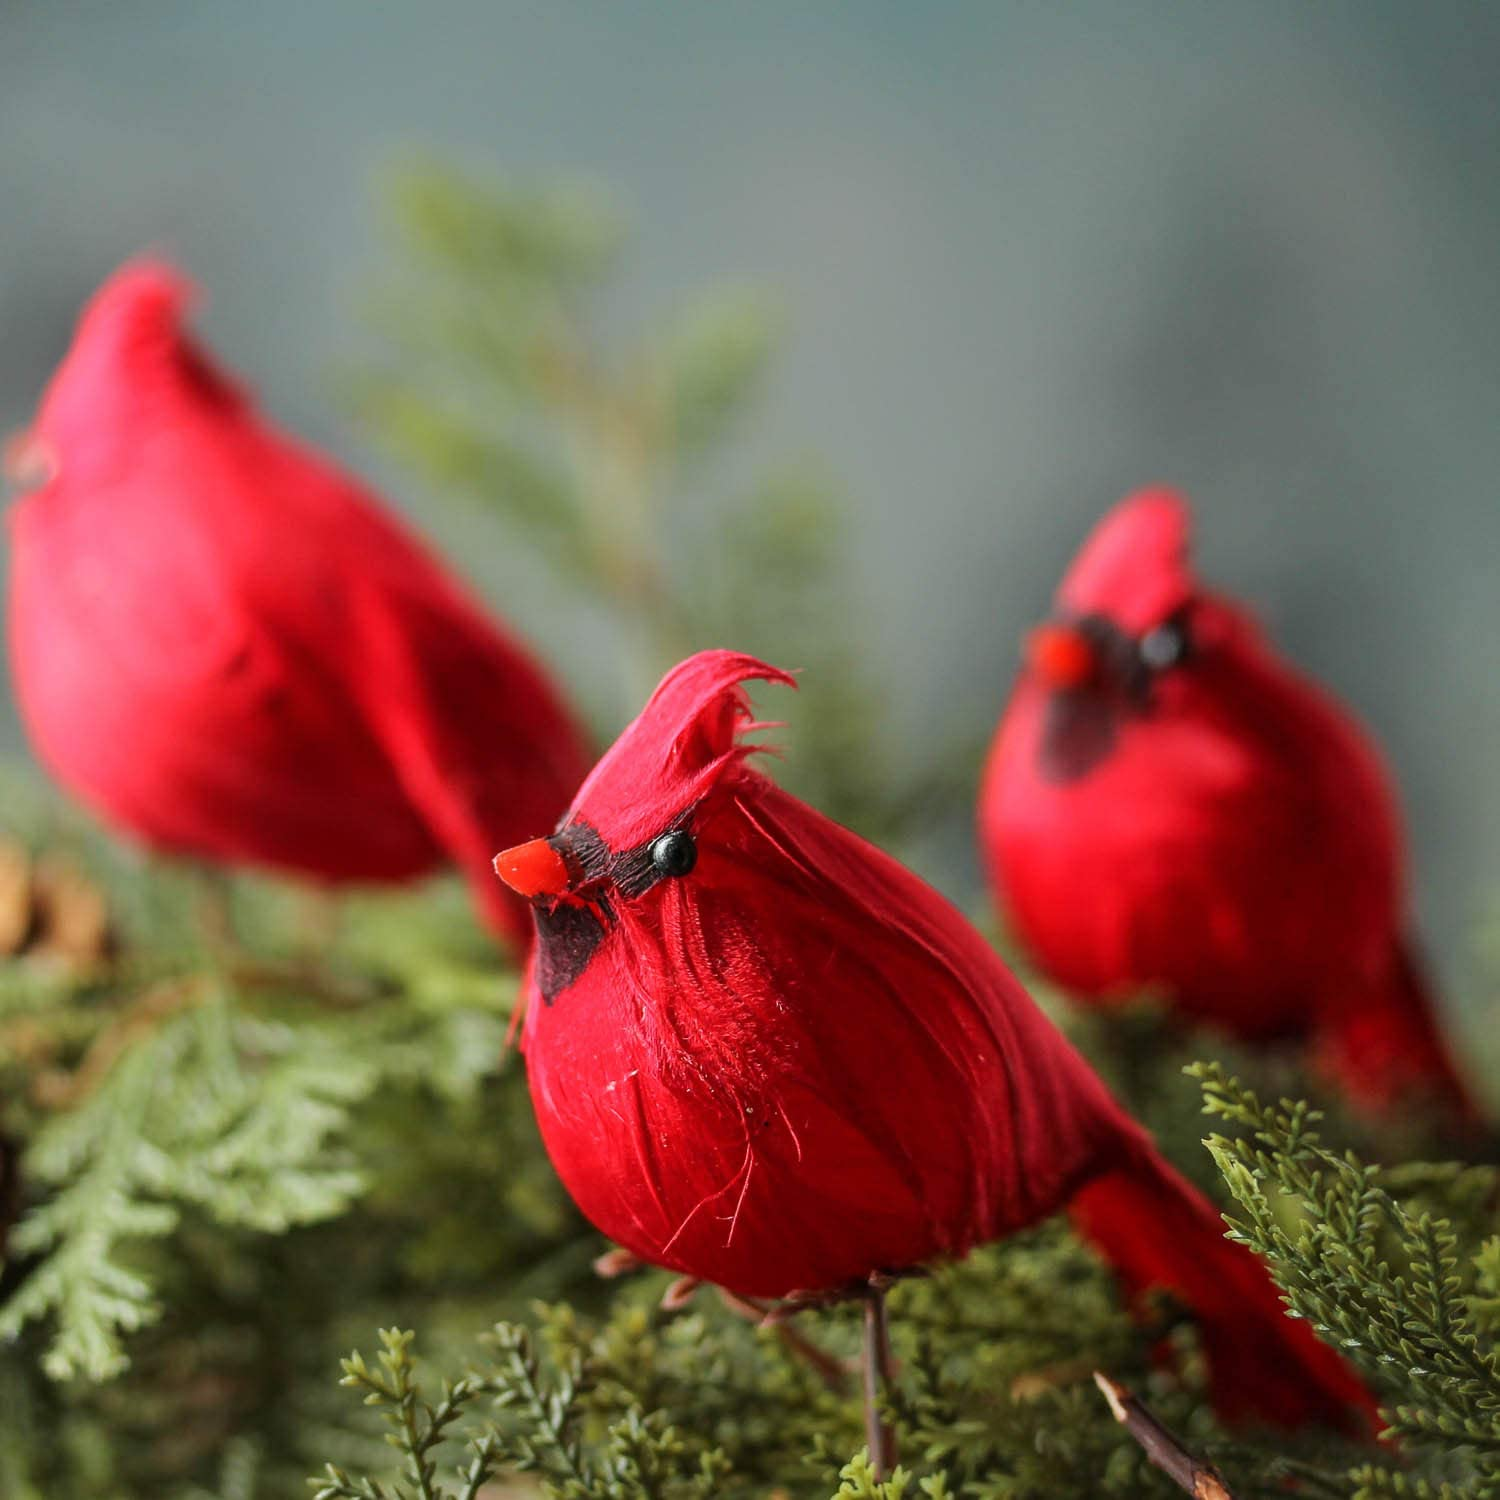 Factory Direct Craft Package of 12 Bright Red Artificial Cardinal Birds with Clips for Christmas Tree Ornaments and Home Décor and Nature Displays